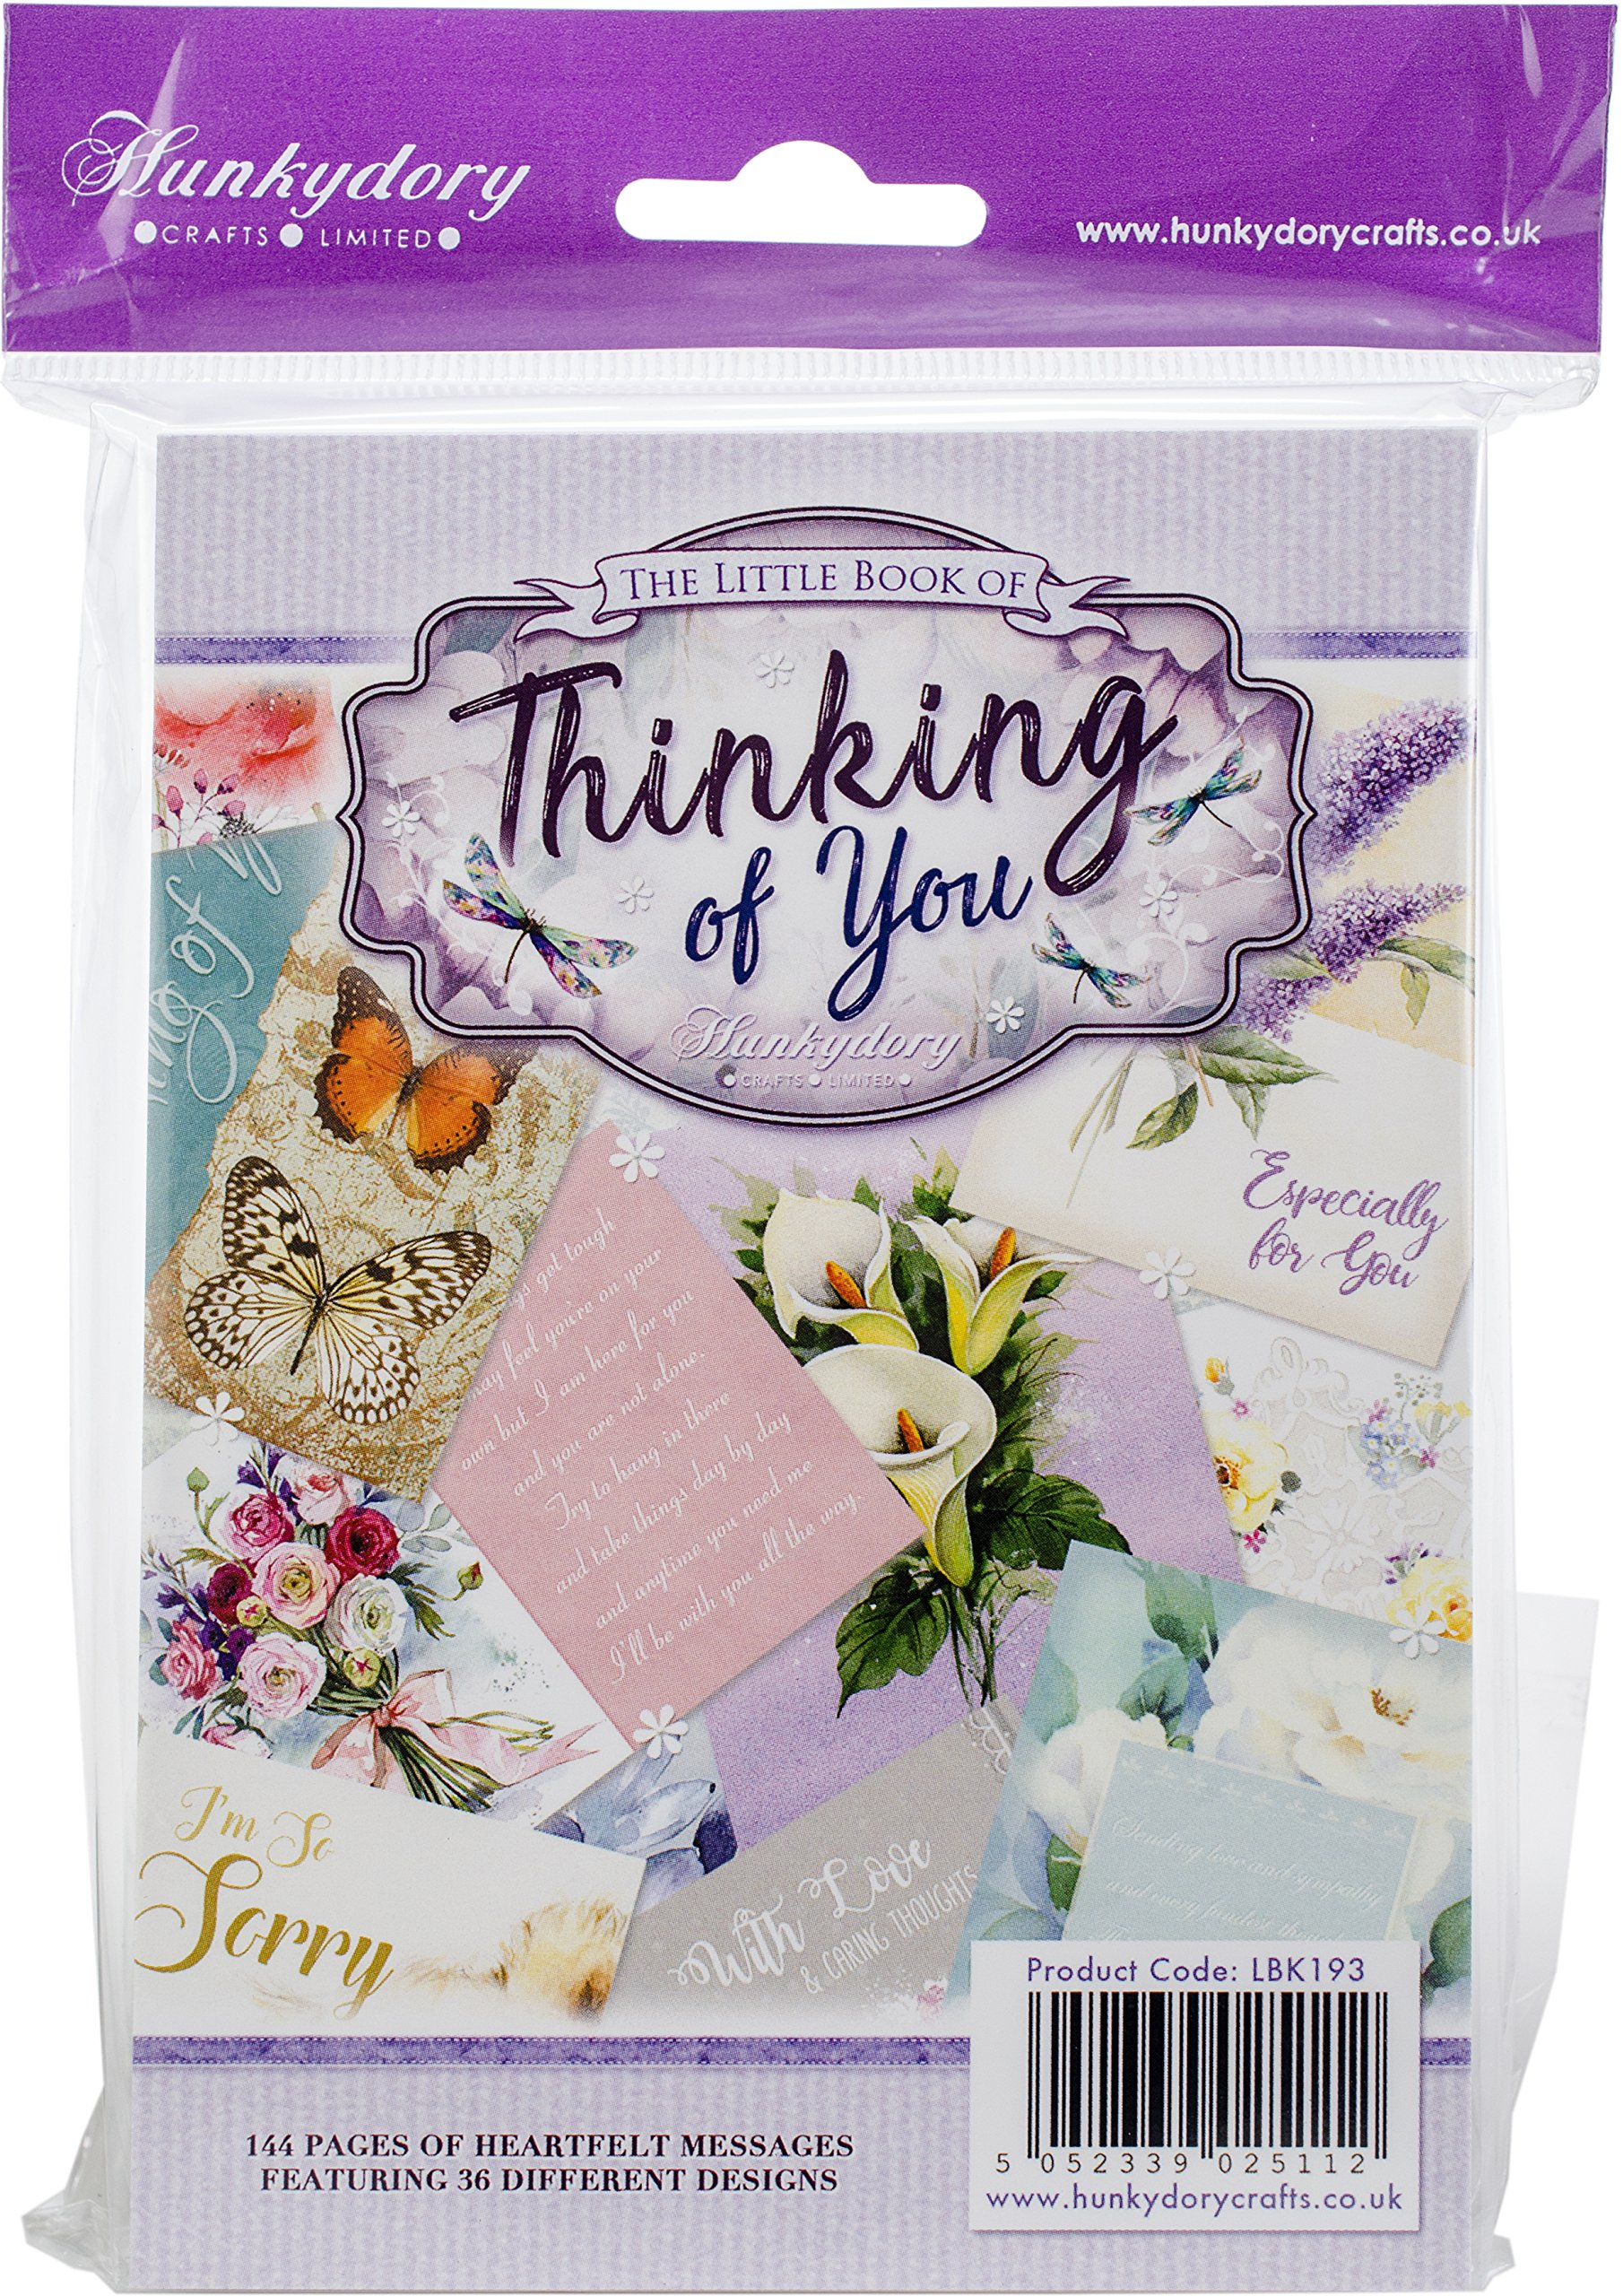 Hunkydory Little Book of Thinking of You - 144 pages approx 6x4-inches LBK193